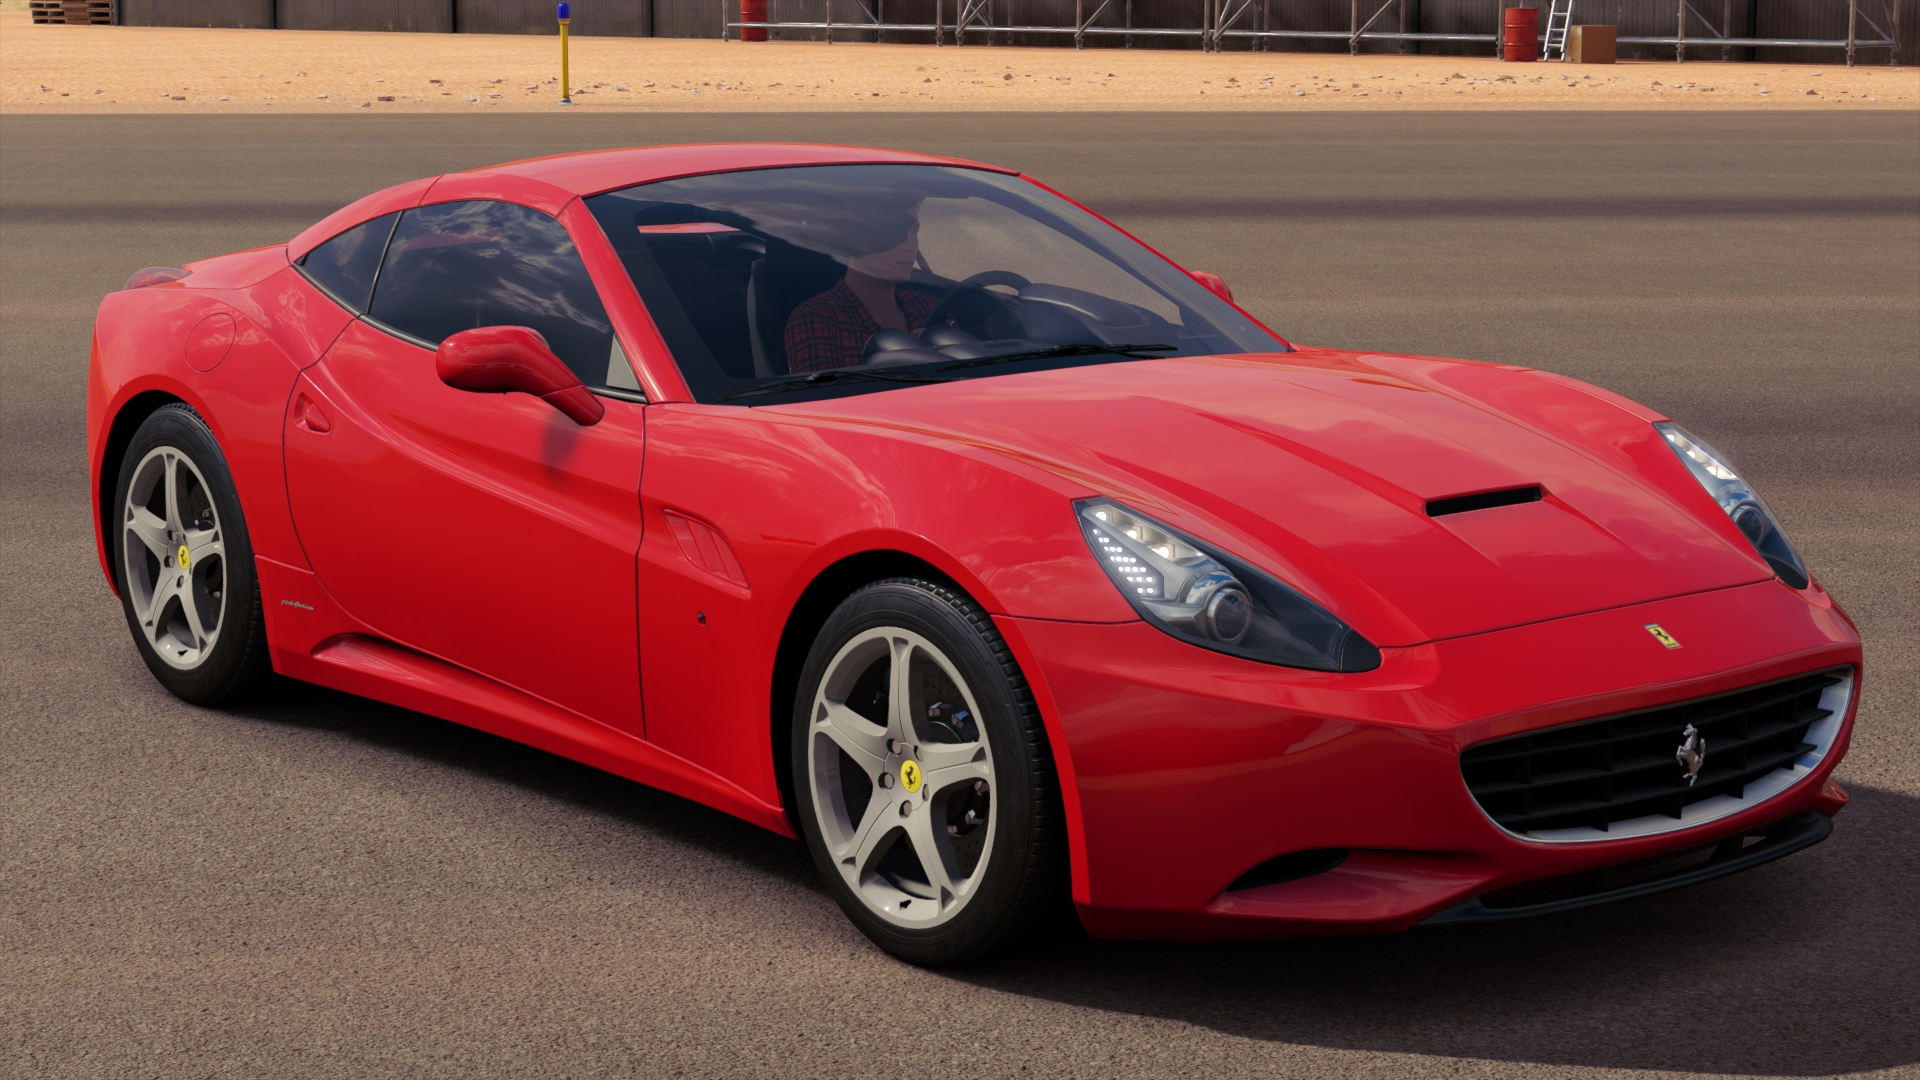 Ferrari California | Forza Motorsport Wiki | FANDOM powered by Wikia